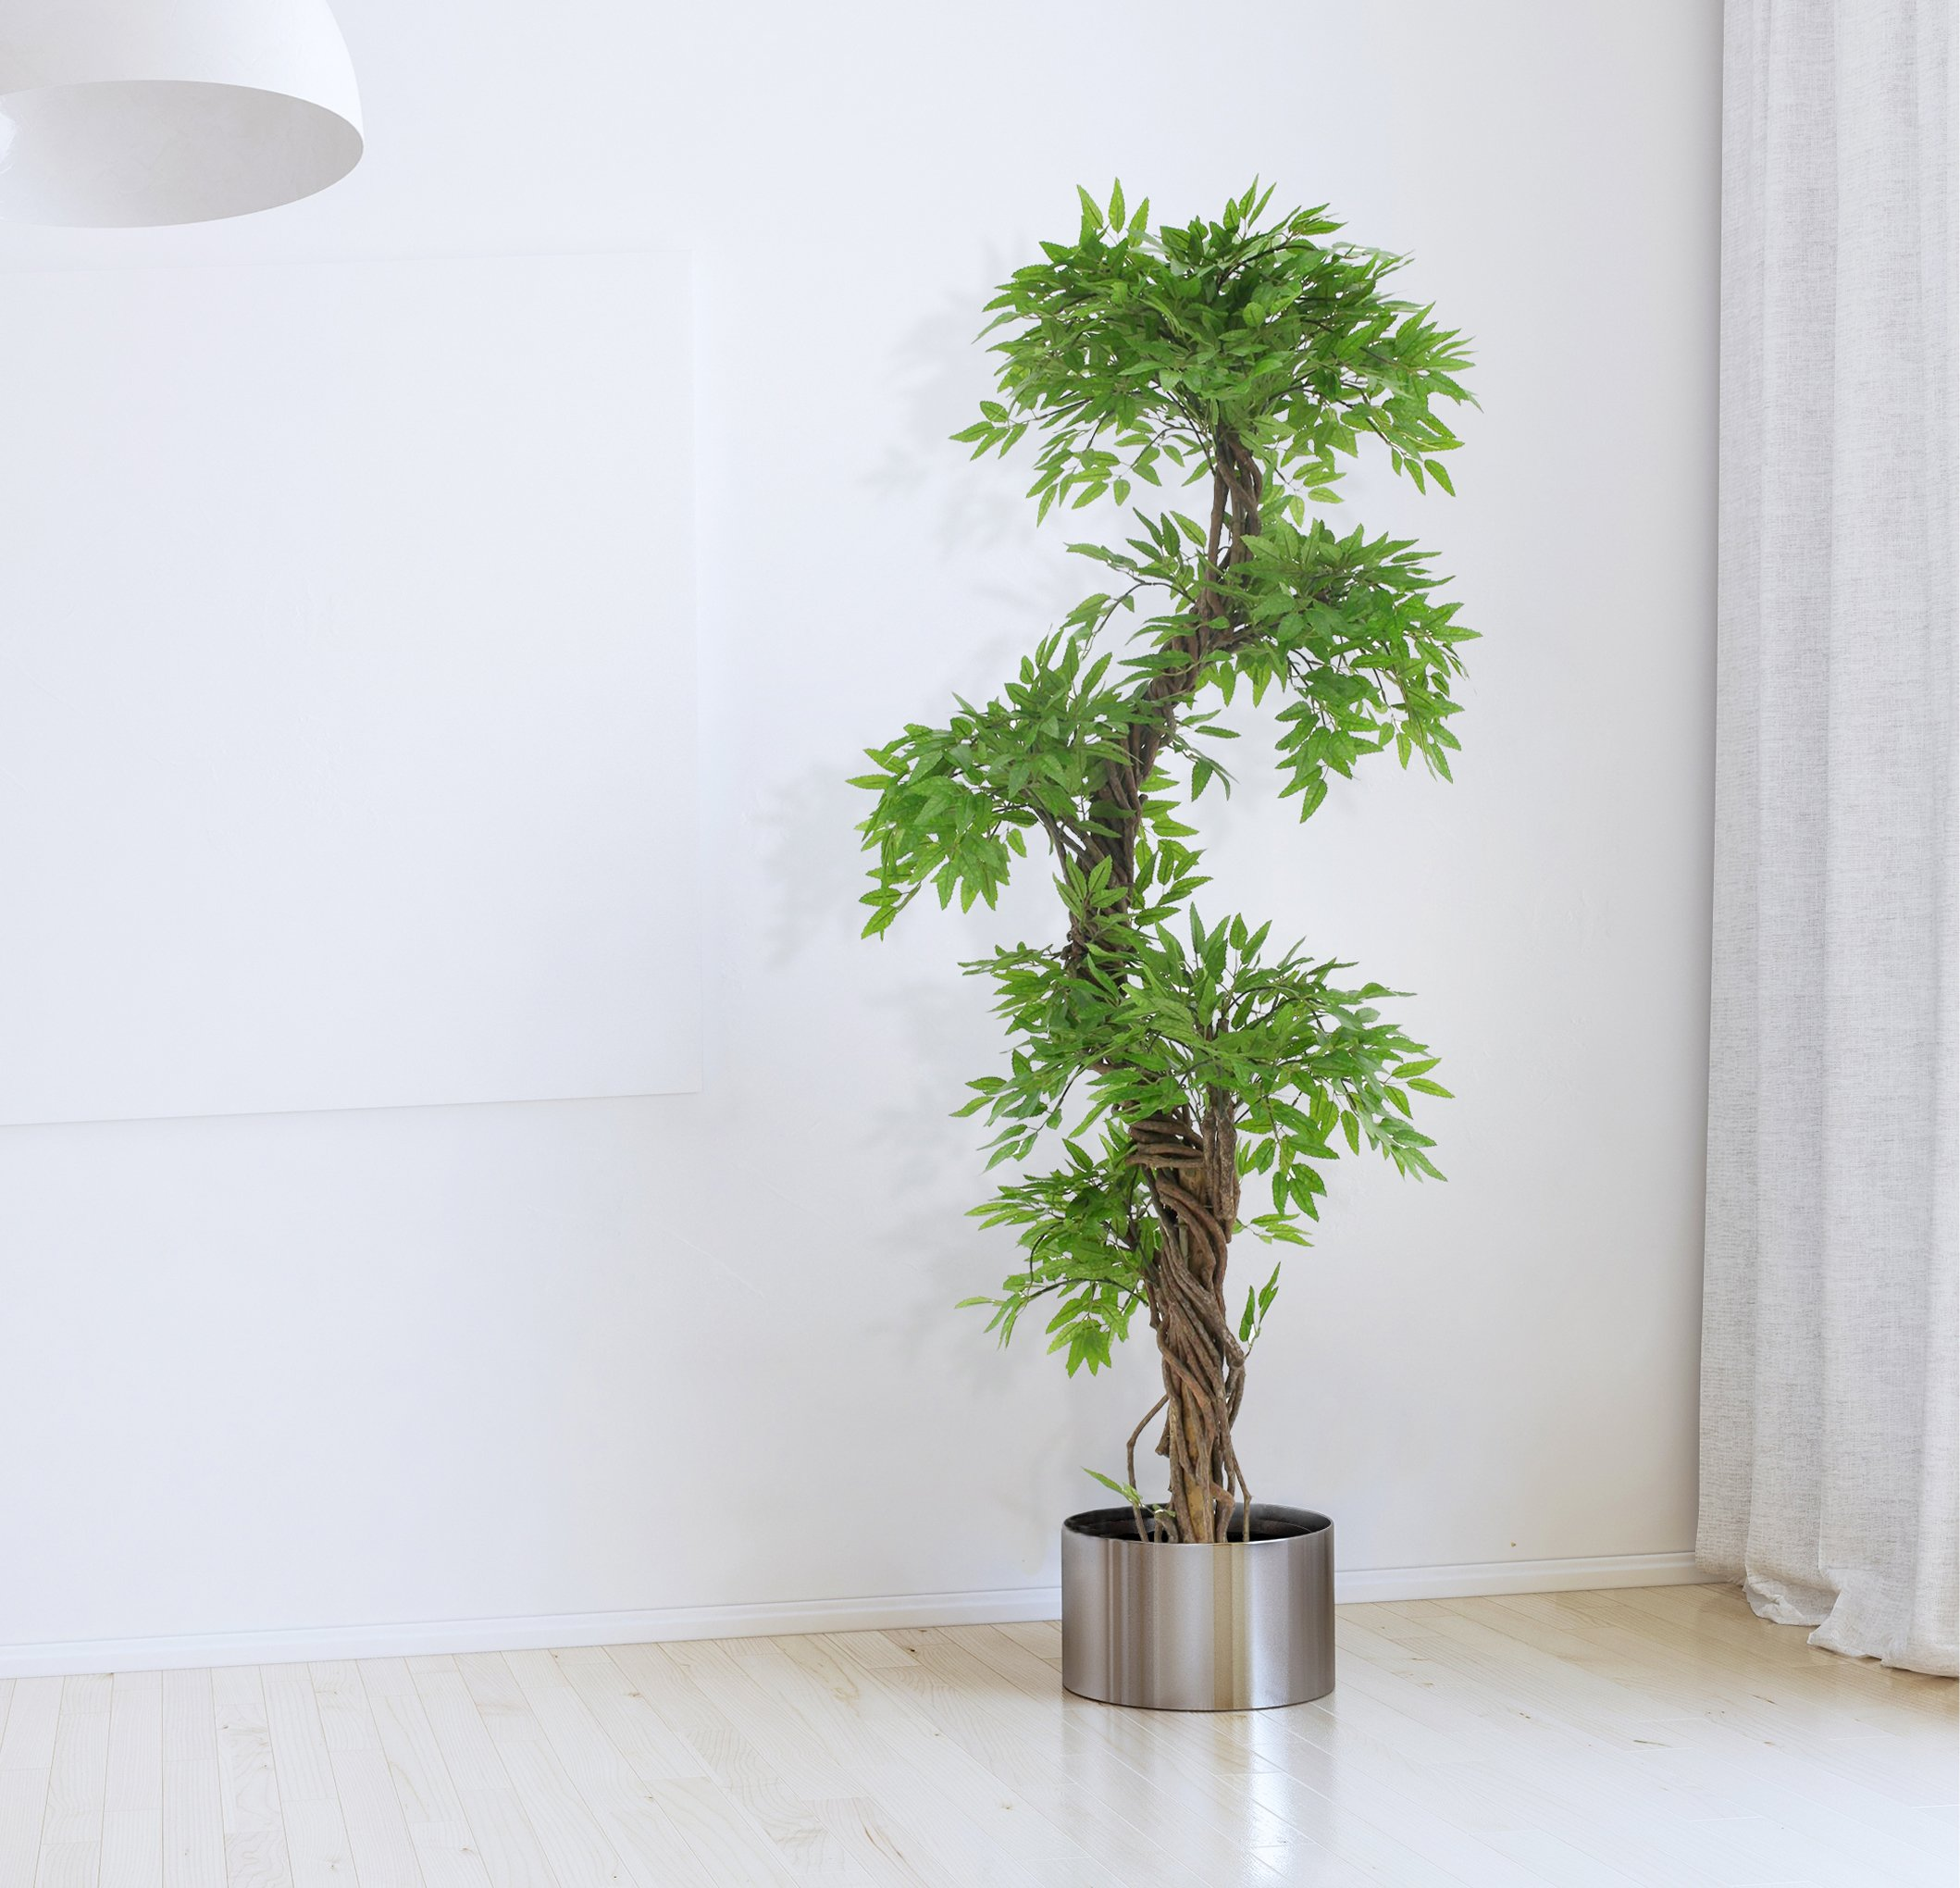 Vert Lifestyle Handmade Japanese Fruticosa Indoor Tree with Real Bark and Synthetic Leaves, Approx. 165 cm Tall by Vert Lifestyle